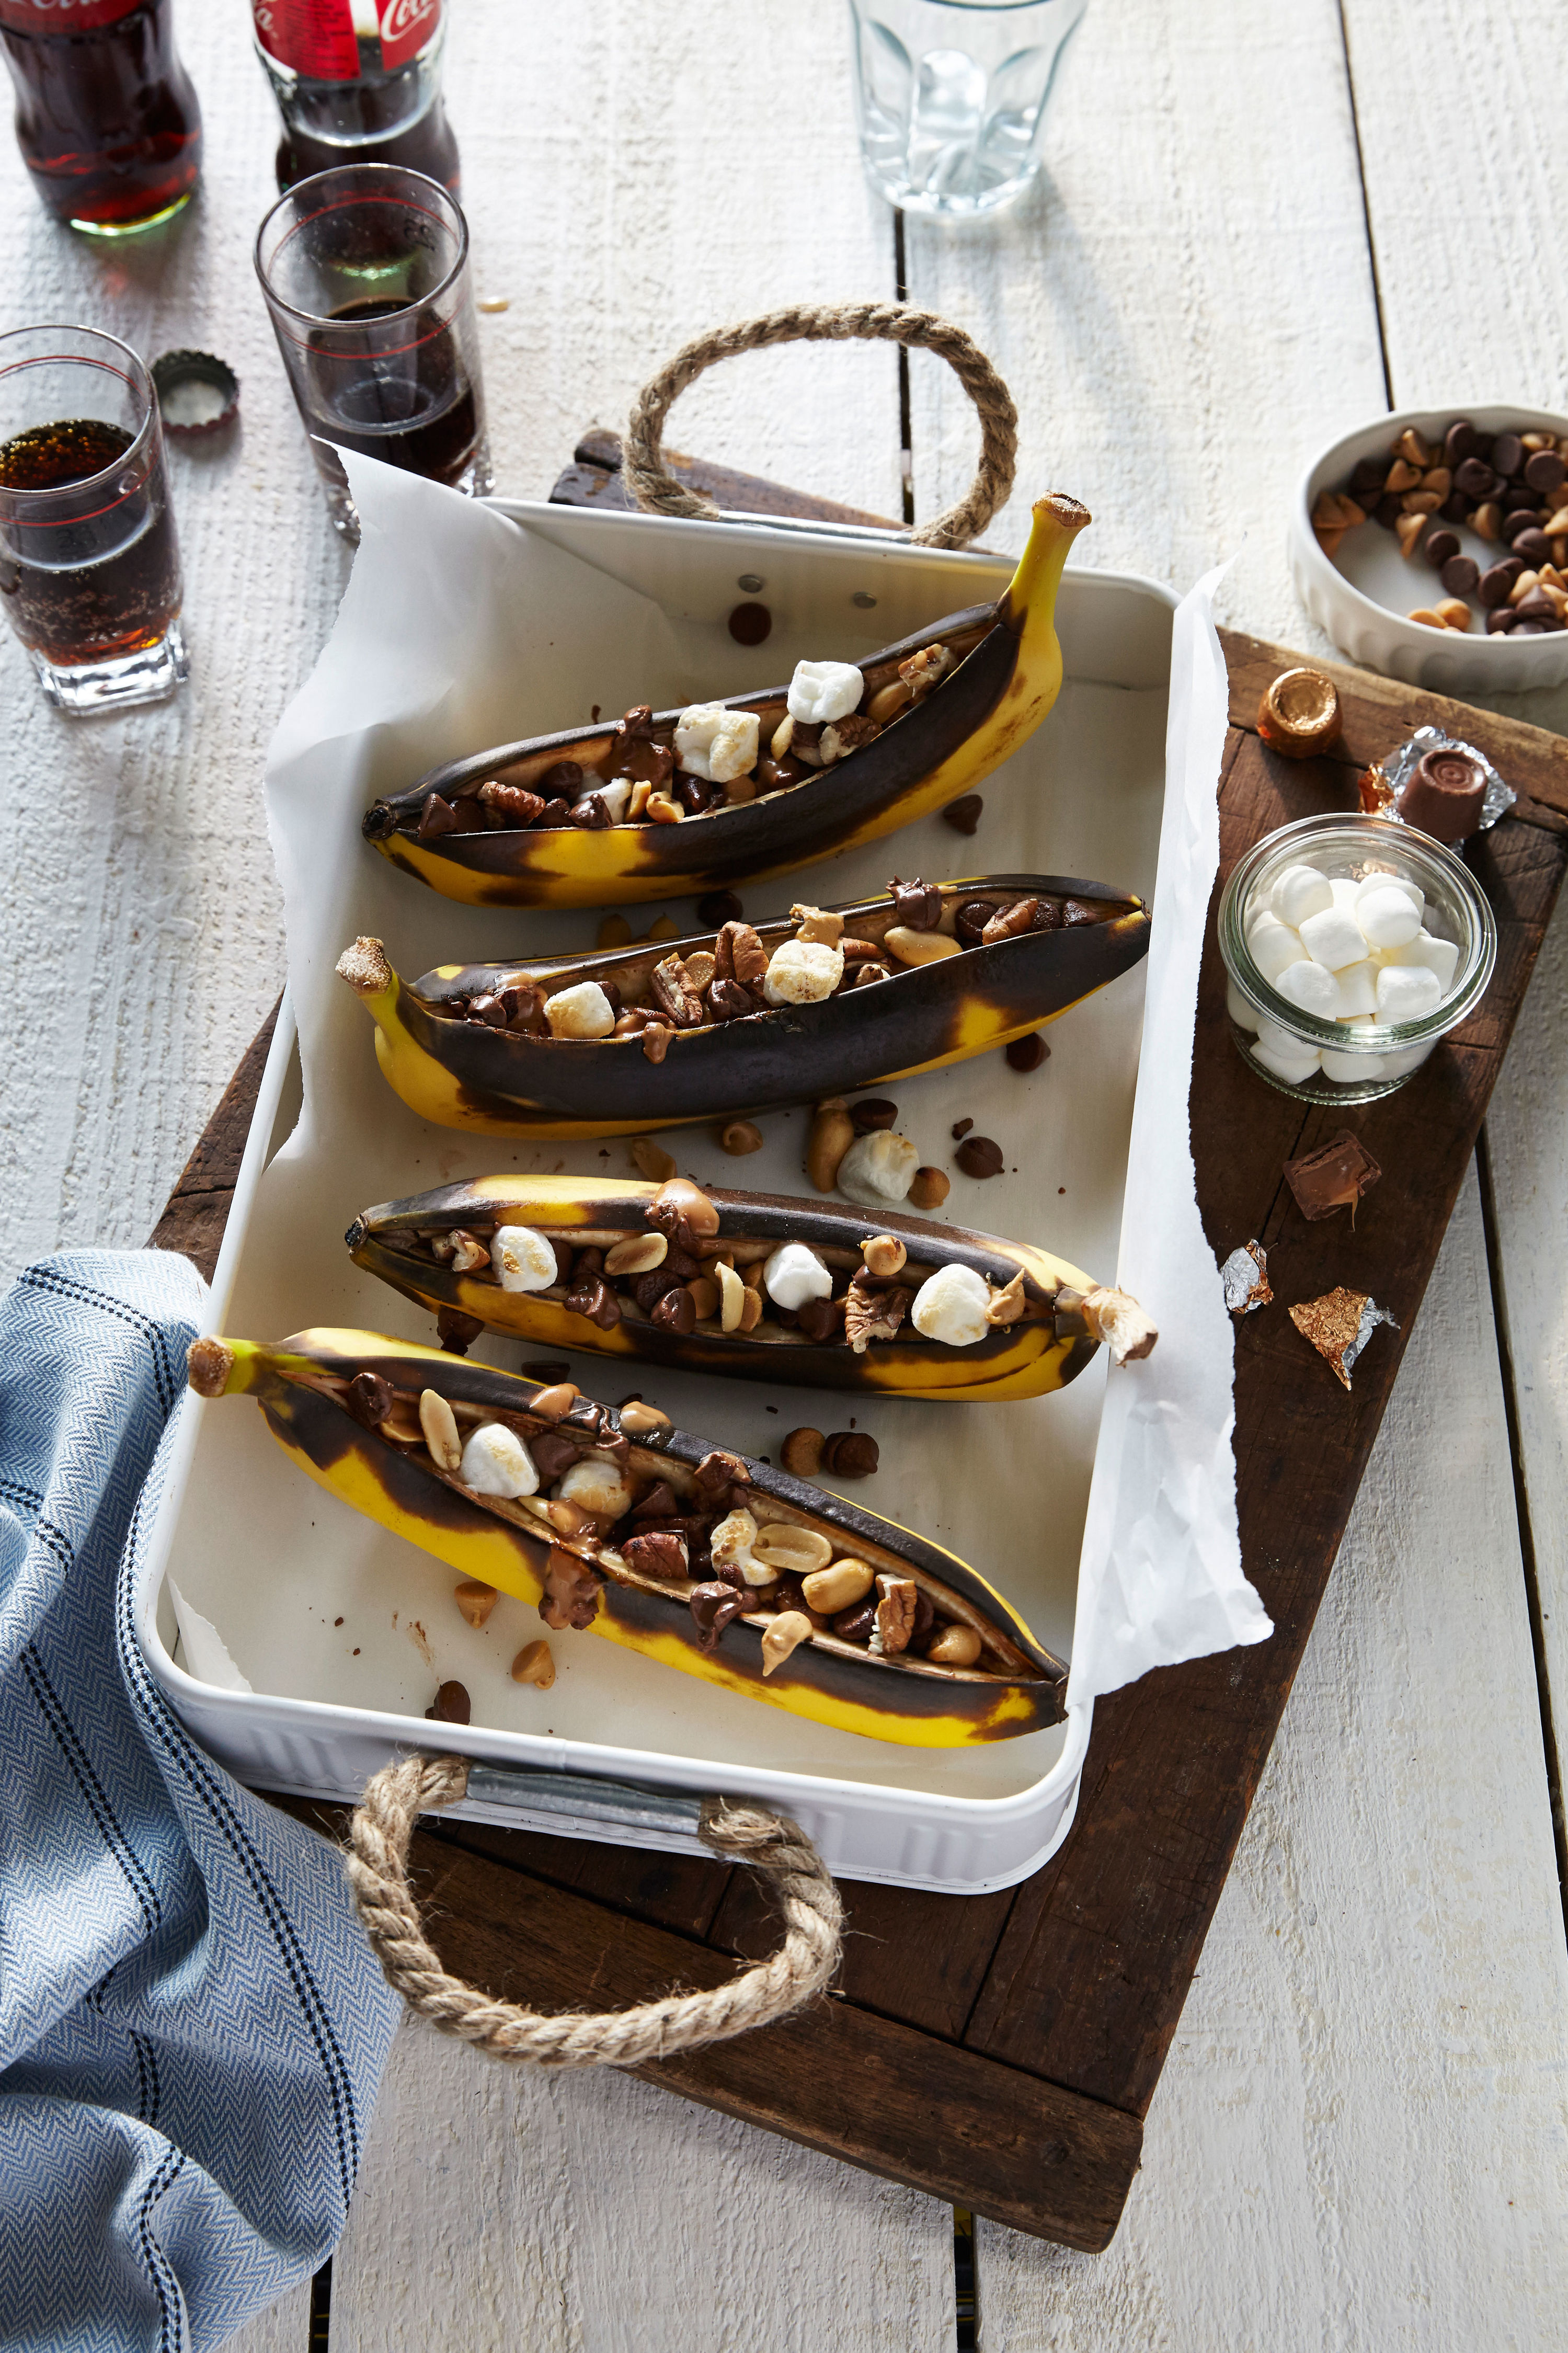 Grilled Stuffed Bananas Recipe